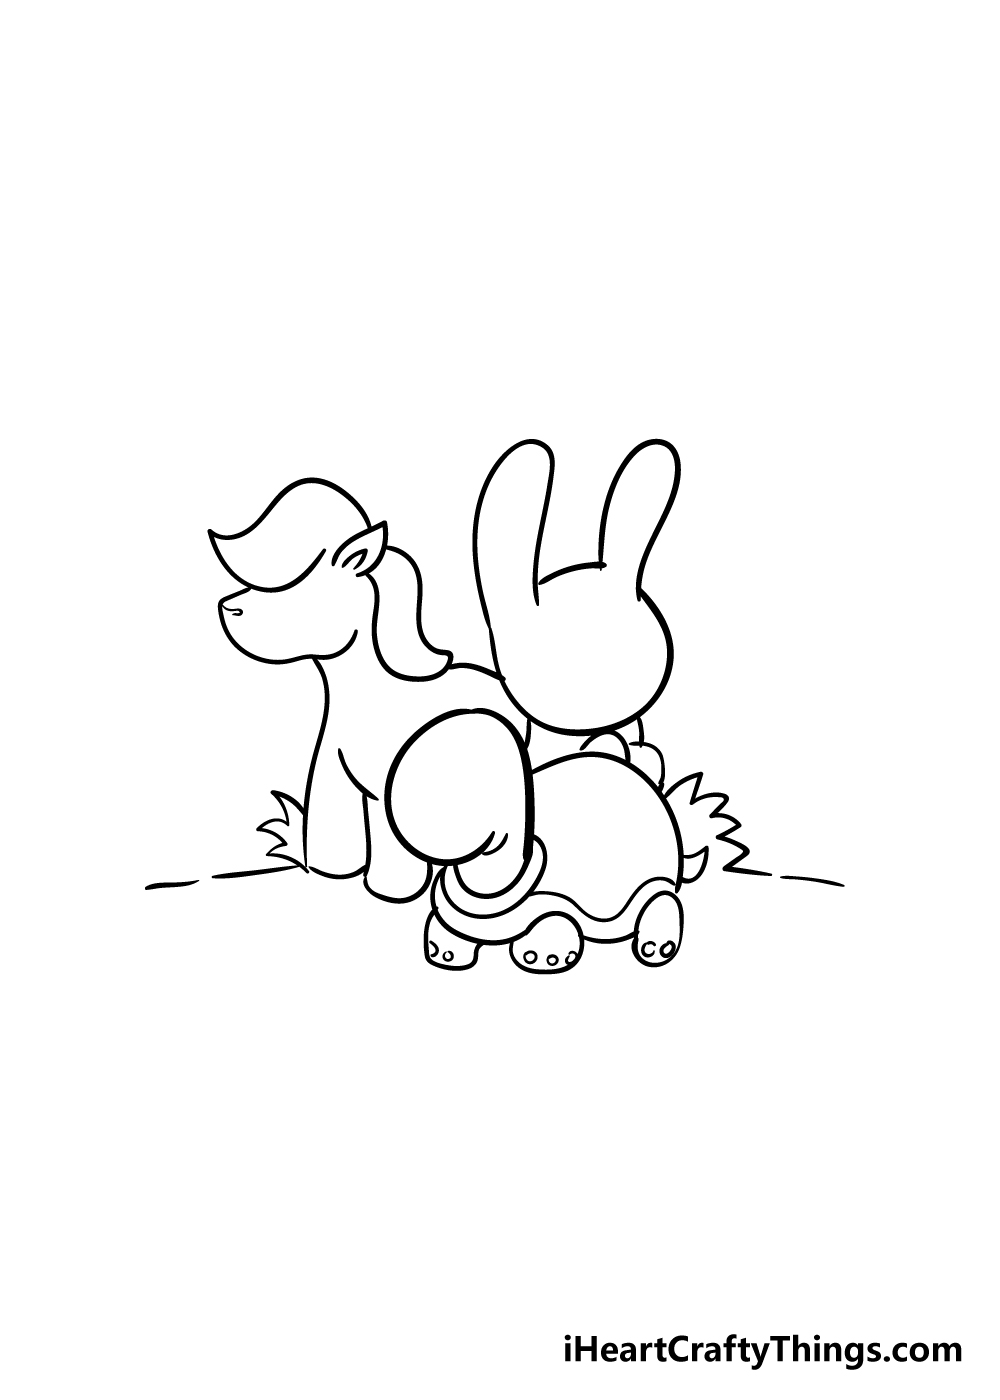 cute animals drawing step 6